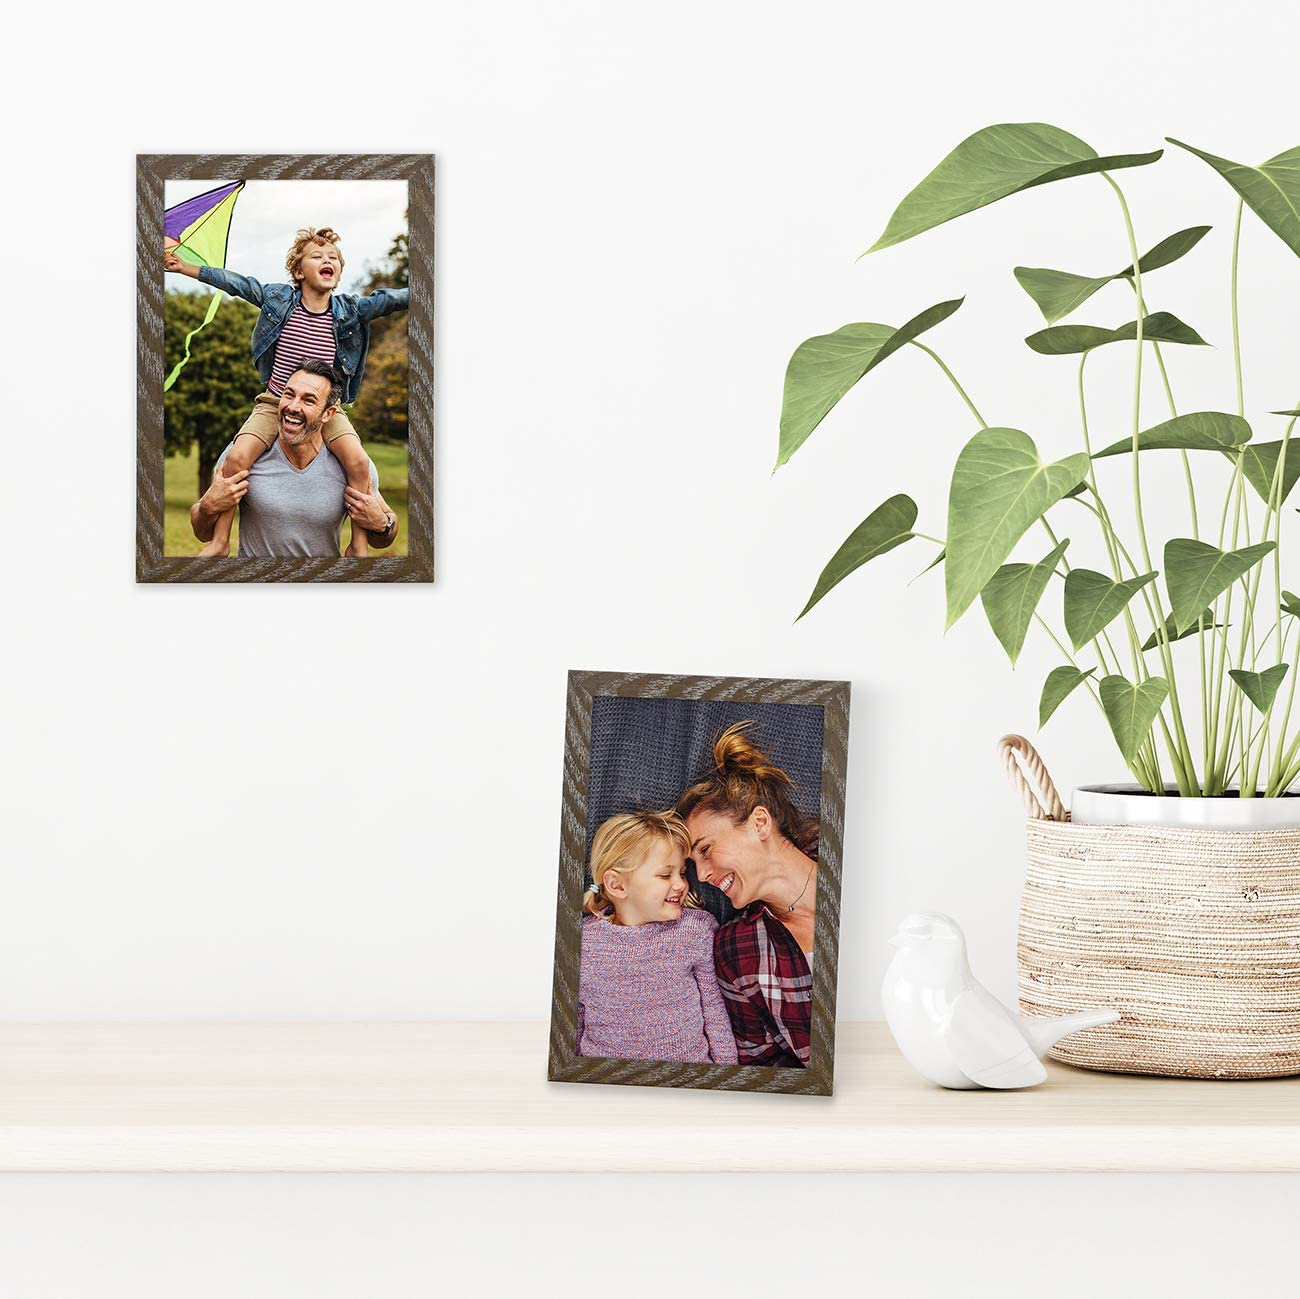 Displays 4x6 Inch Photos with Mat or 5x7 Inch Photos Without Mat Shatter-Resistant Glass Hanging Hardware Included! Americanflat Black Picture Frame